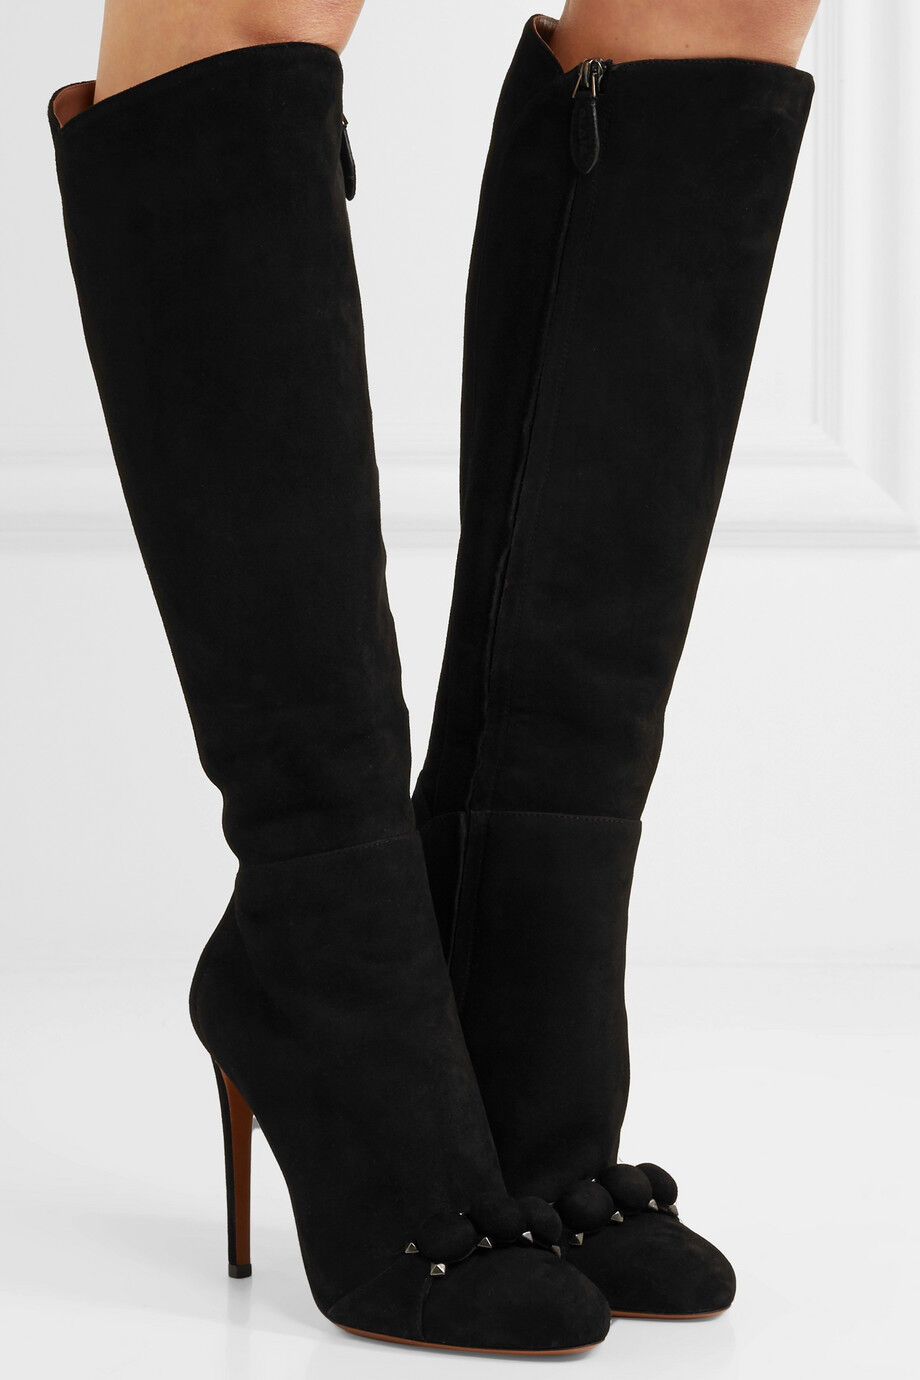 $1710 Azzedine Alaia Suede Black Bombe Knee Boots Heels Shoes Booties 37